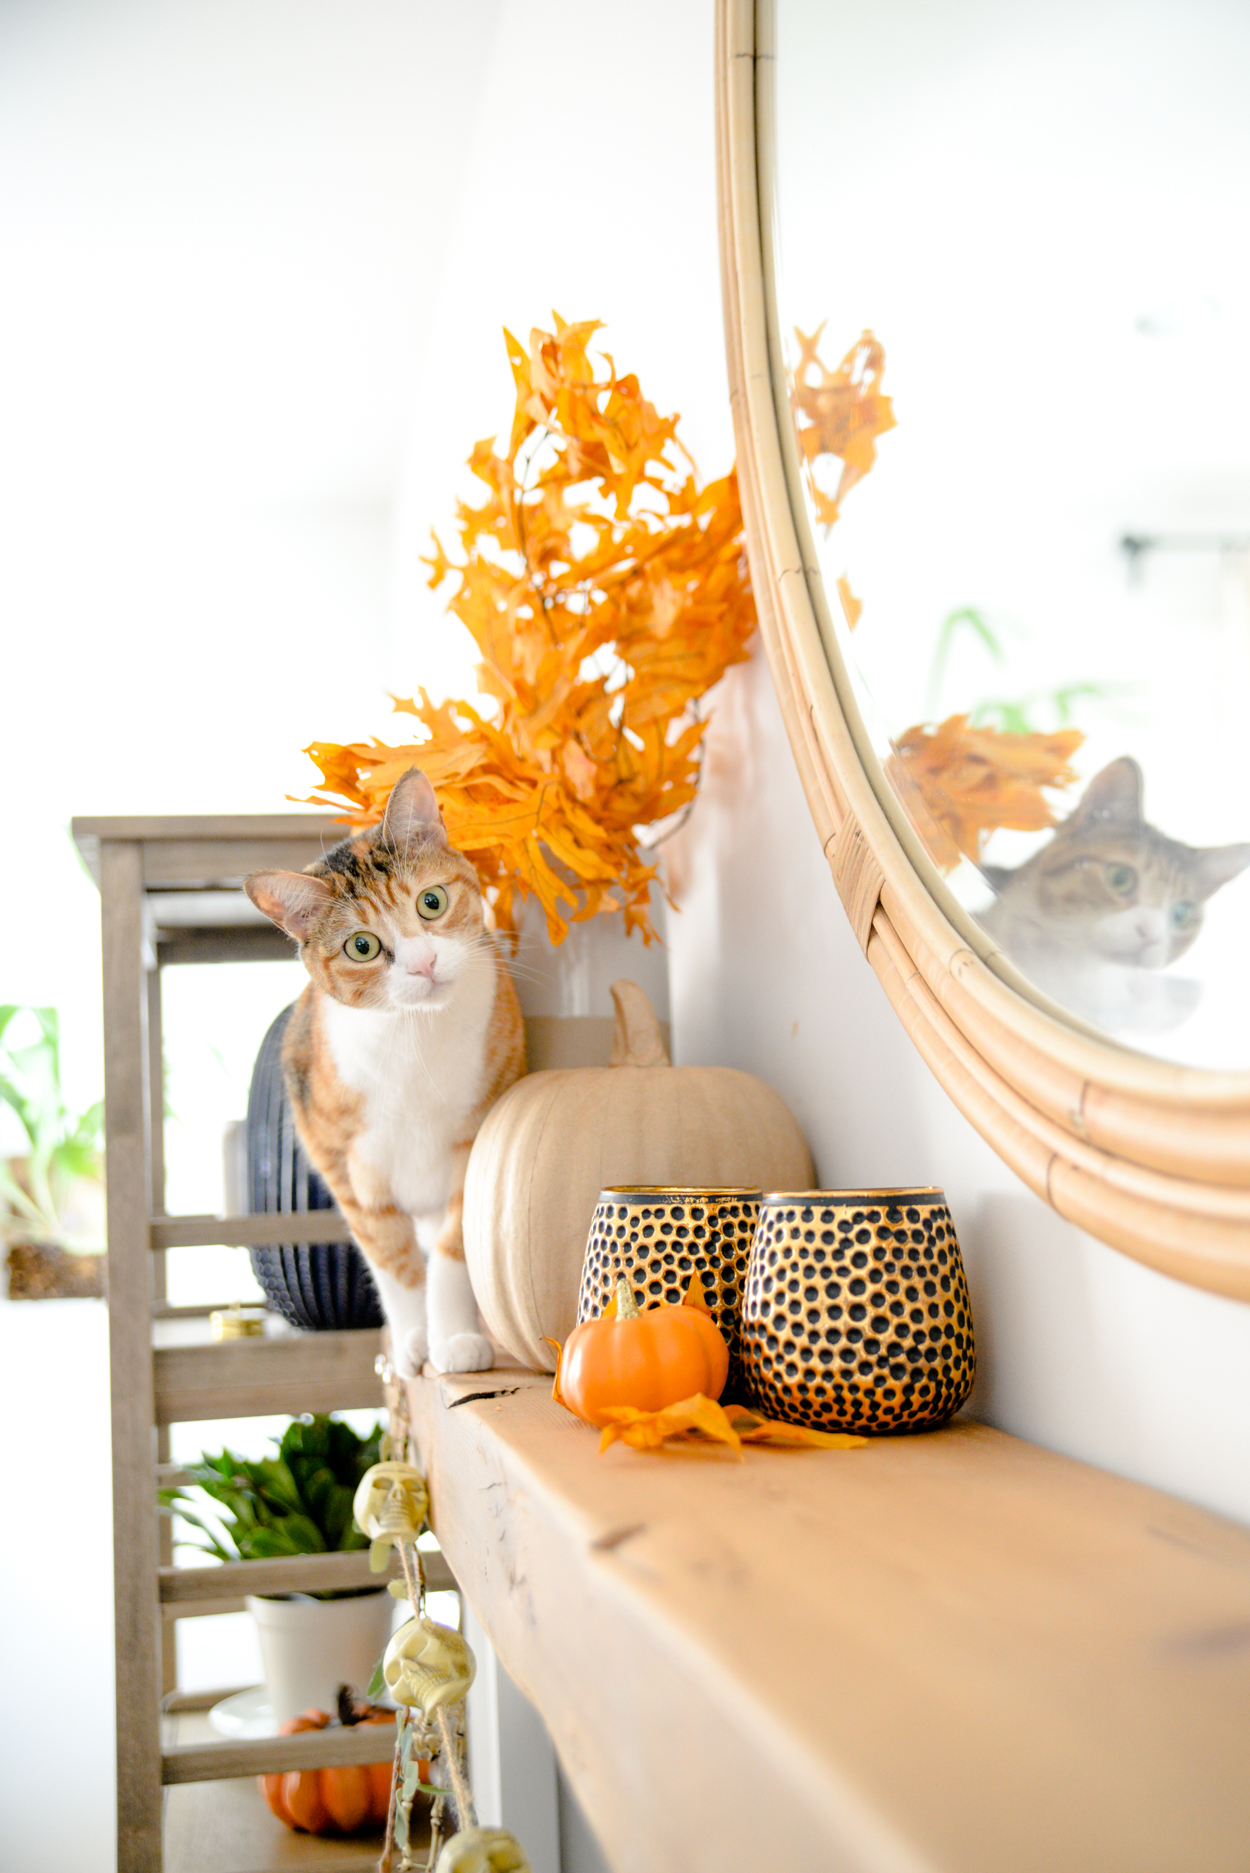 White and orange cat walking along a wood beam mantel decorated with orange leaves and pumpkins